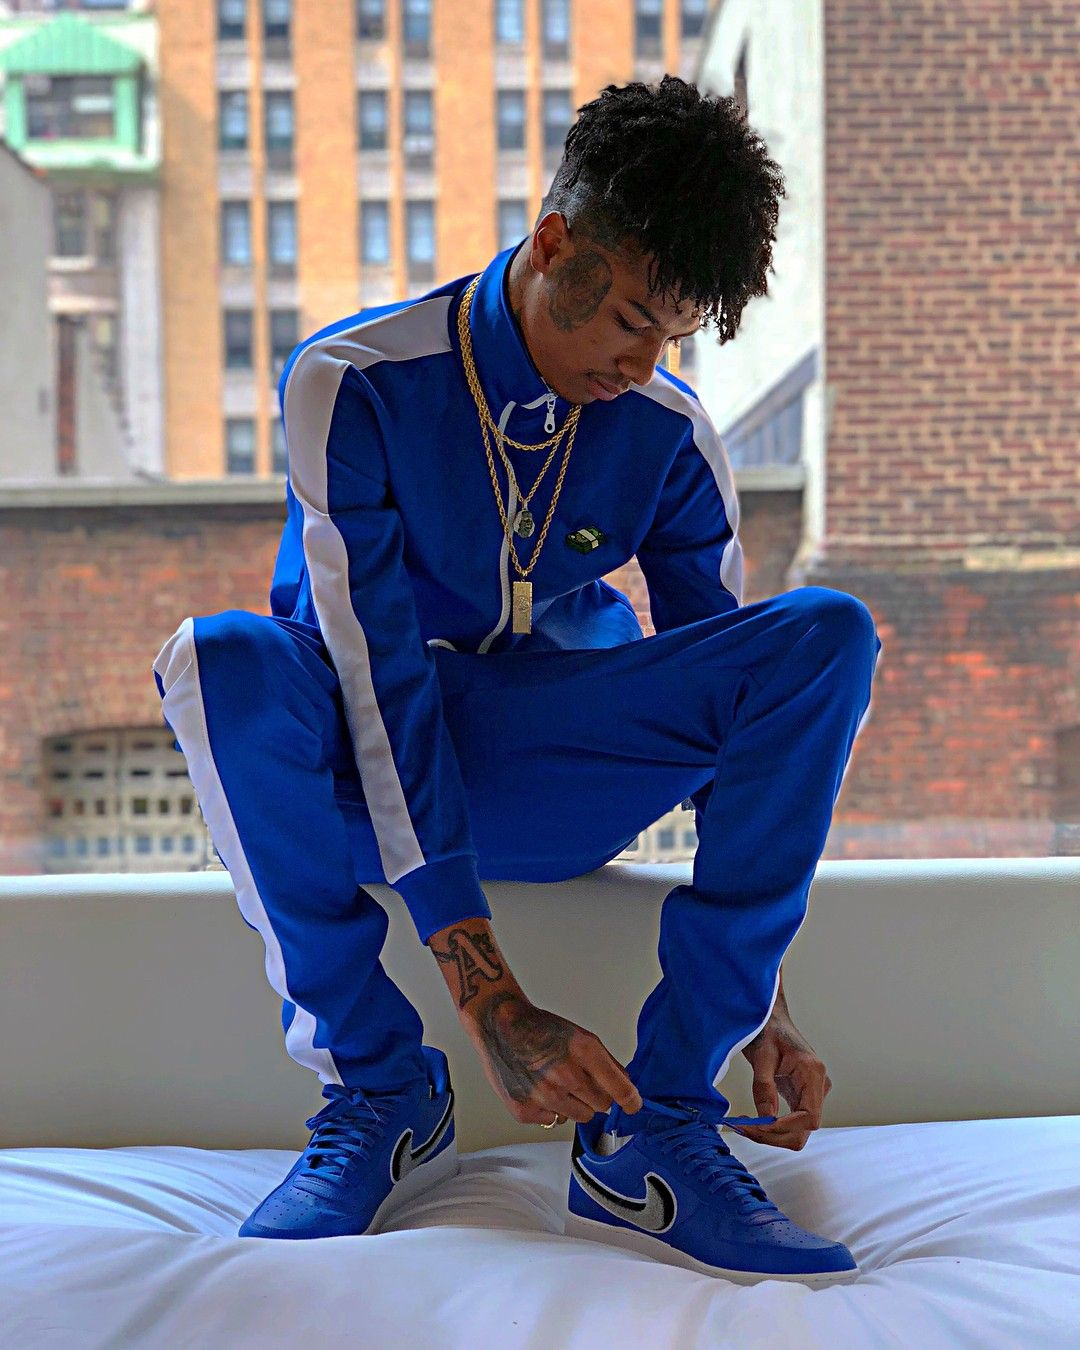 Pin by Zahracoates on Blueface Rapper outfits, Rapper